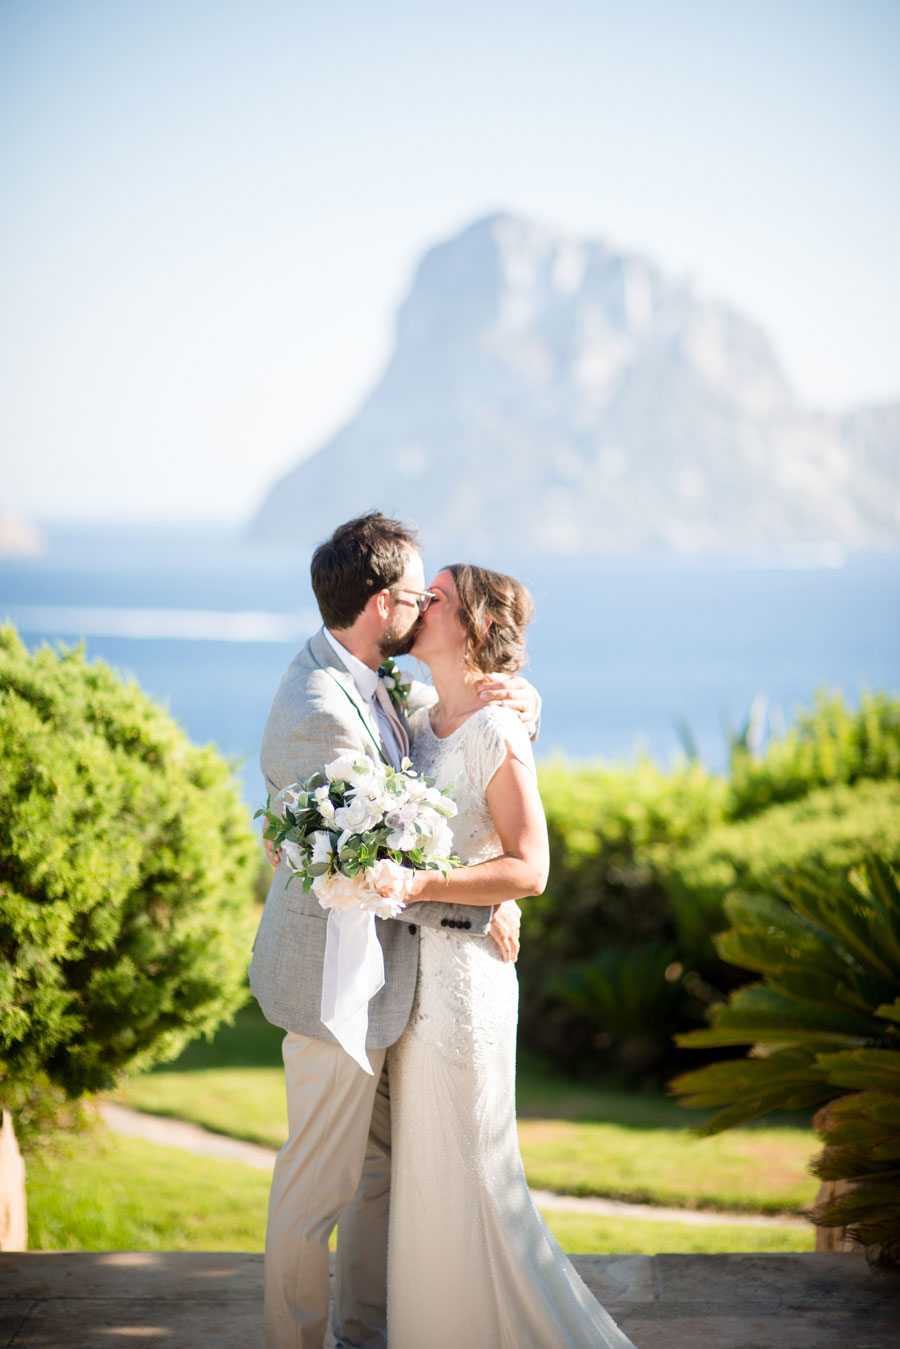 nicola-and-jimmy-es-vedra-ibiza-gypsy-westwood-photography-73